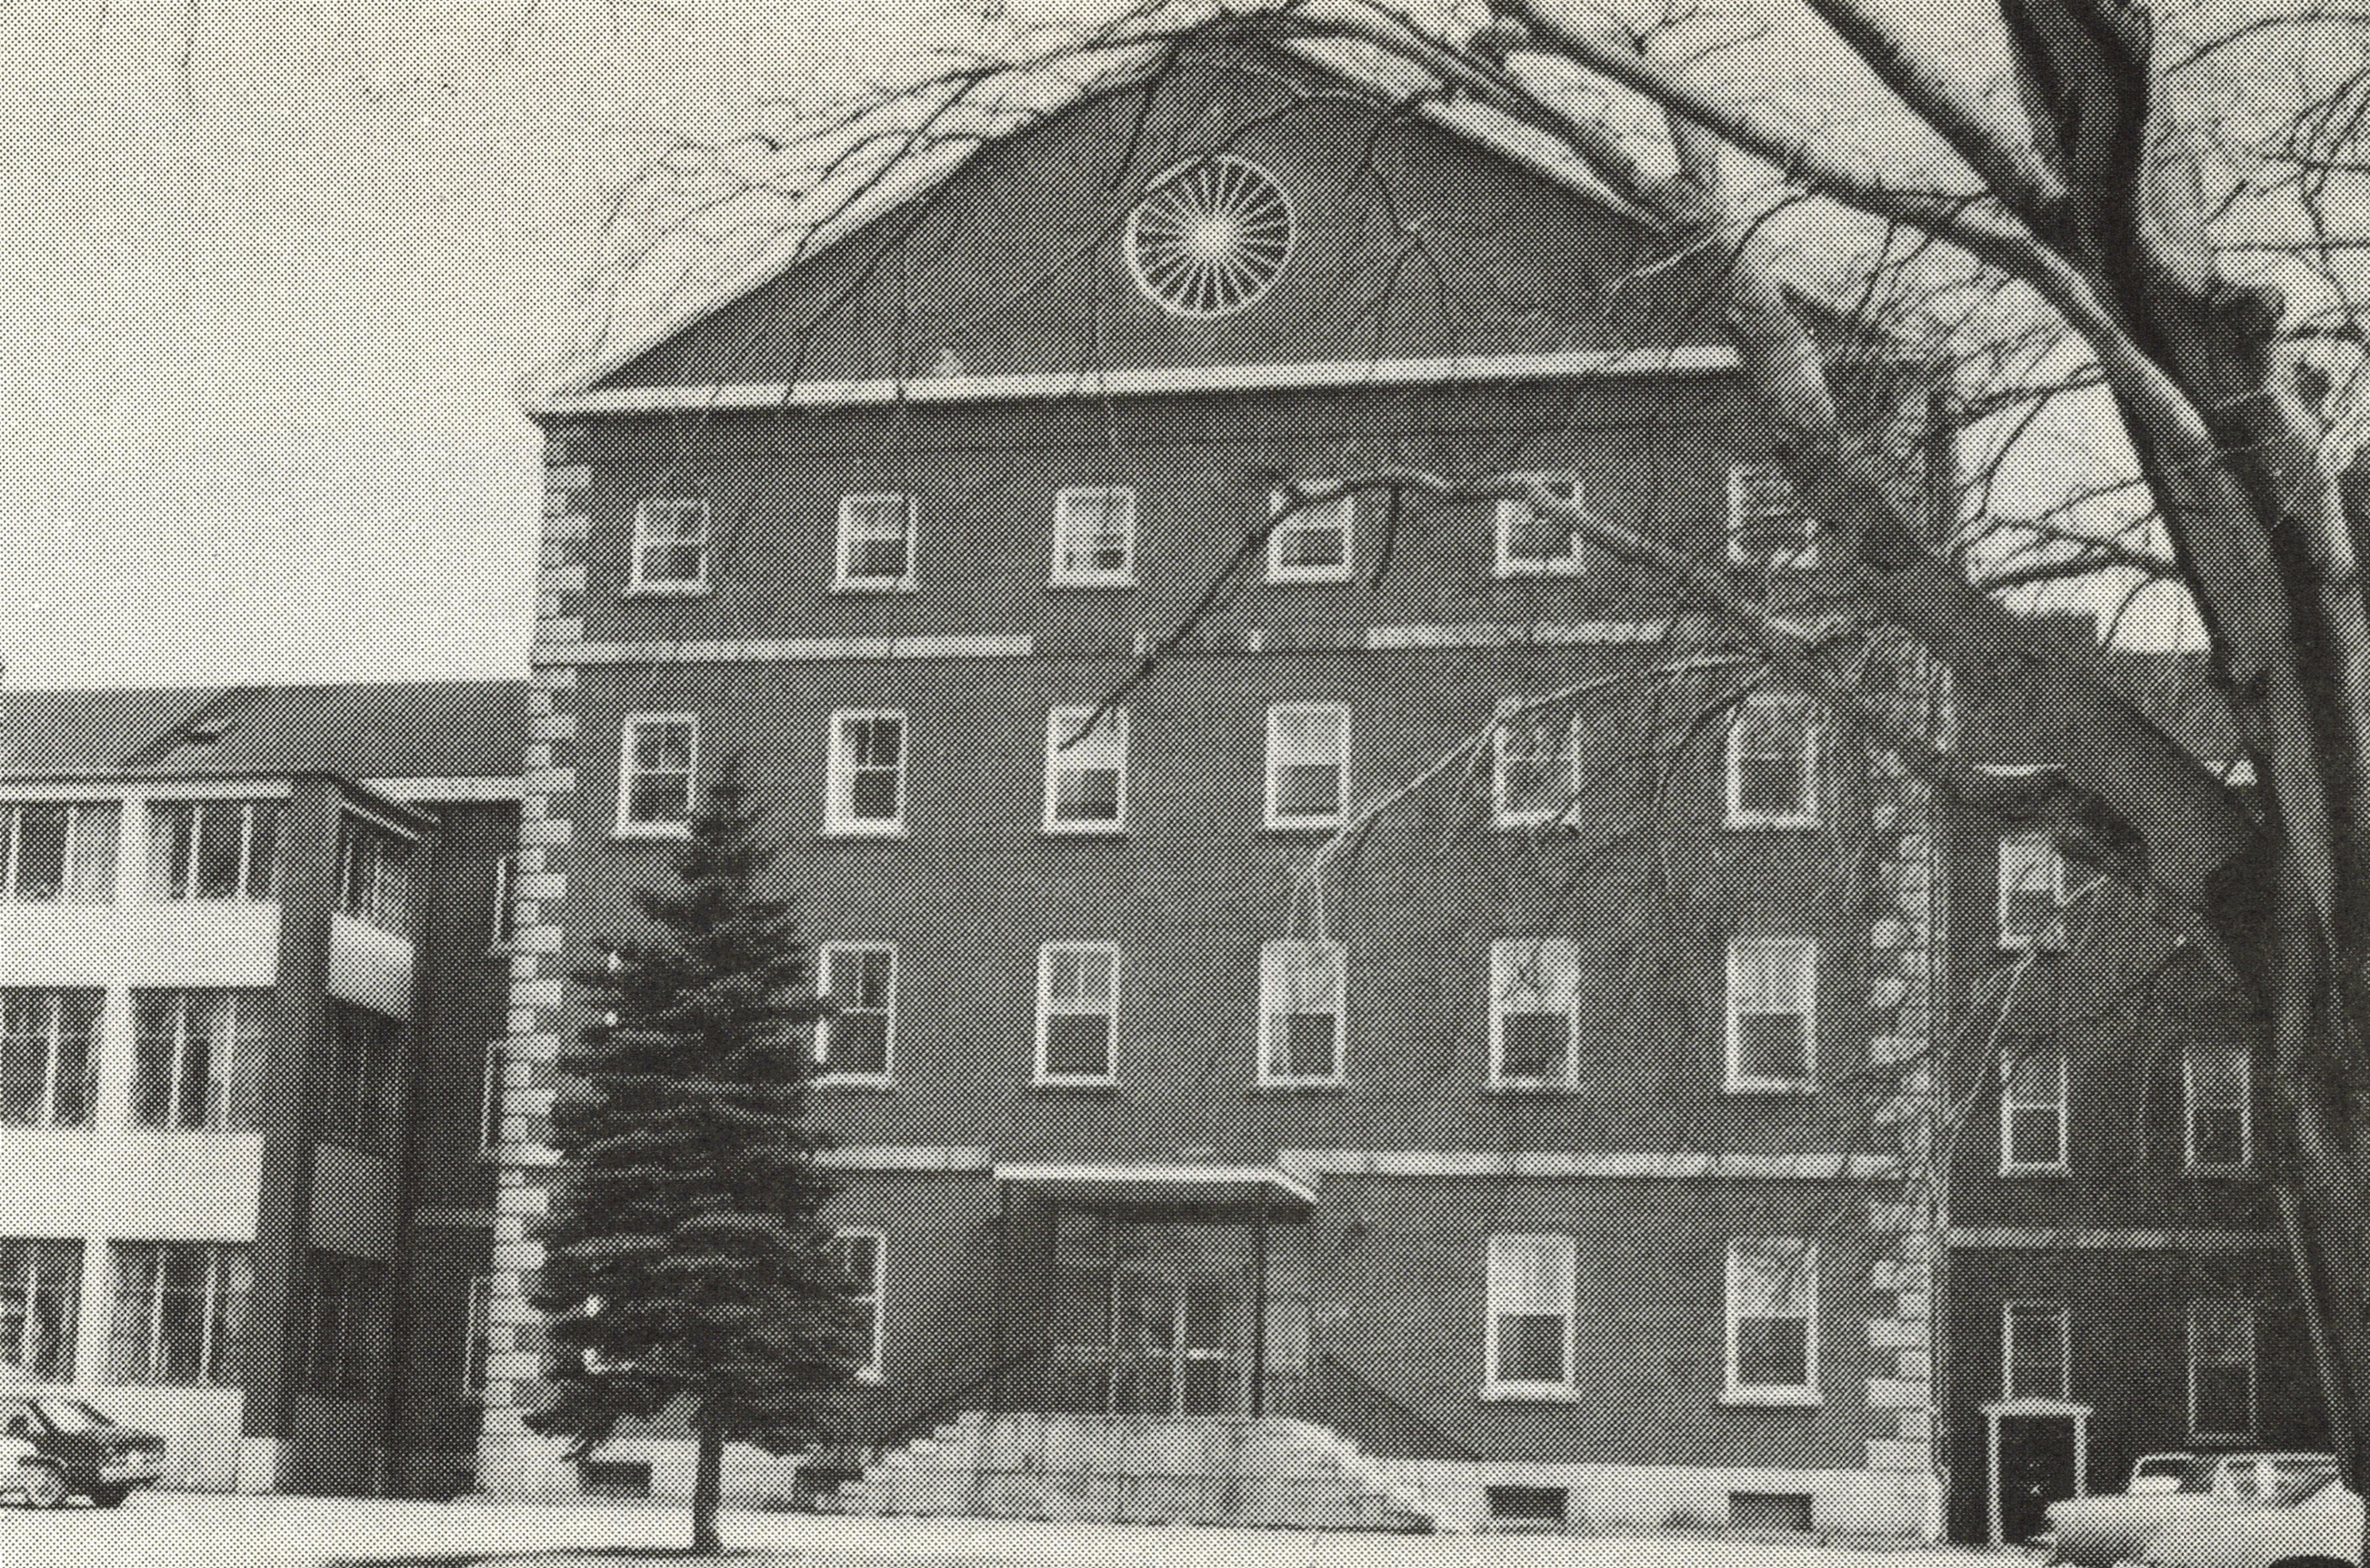 black and white photo of older multi-story institutional building